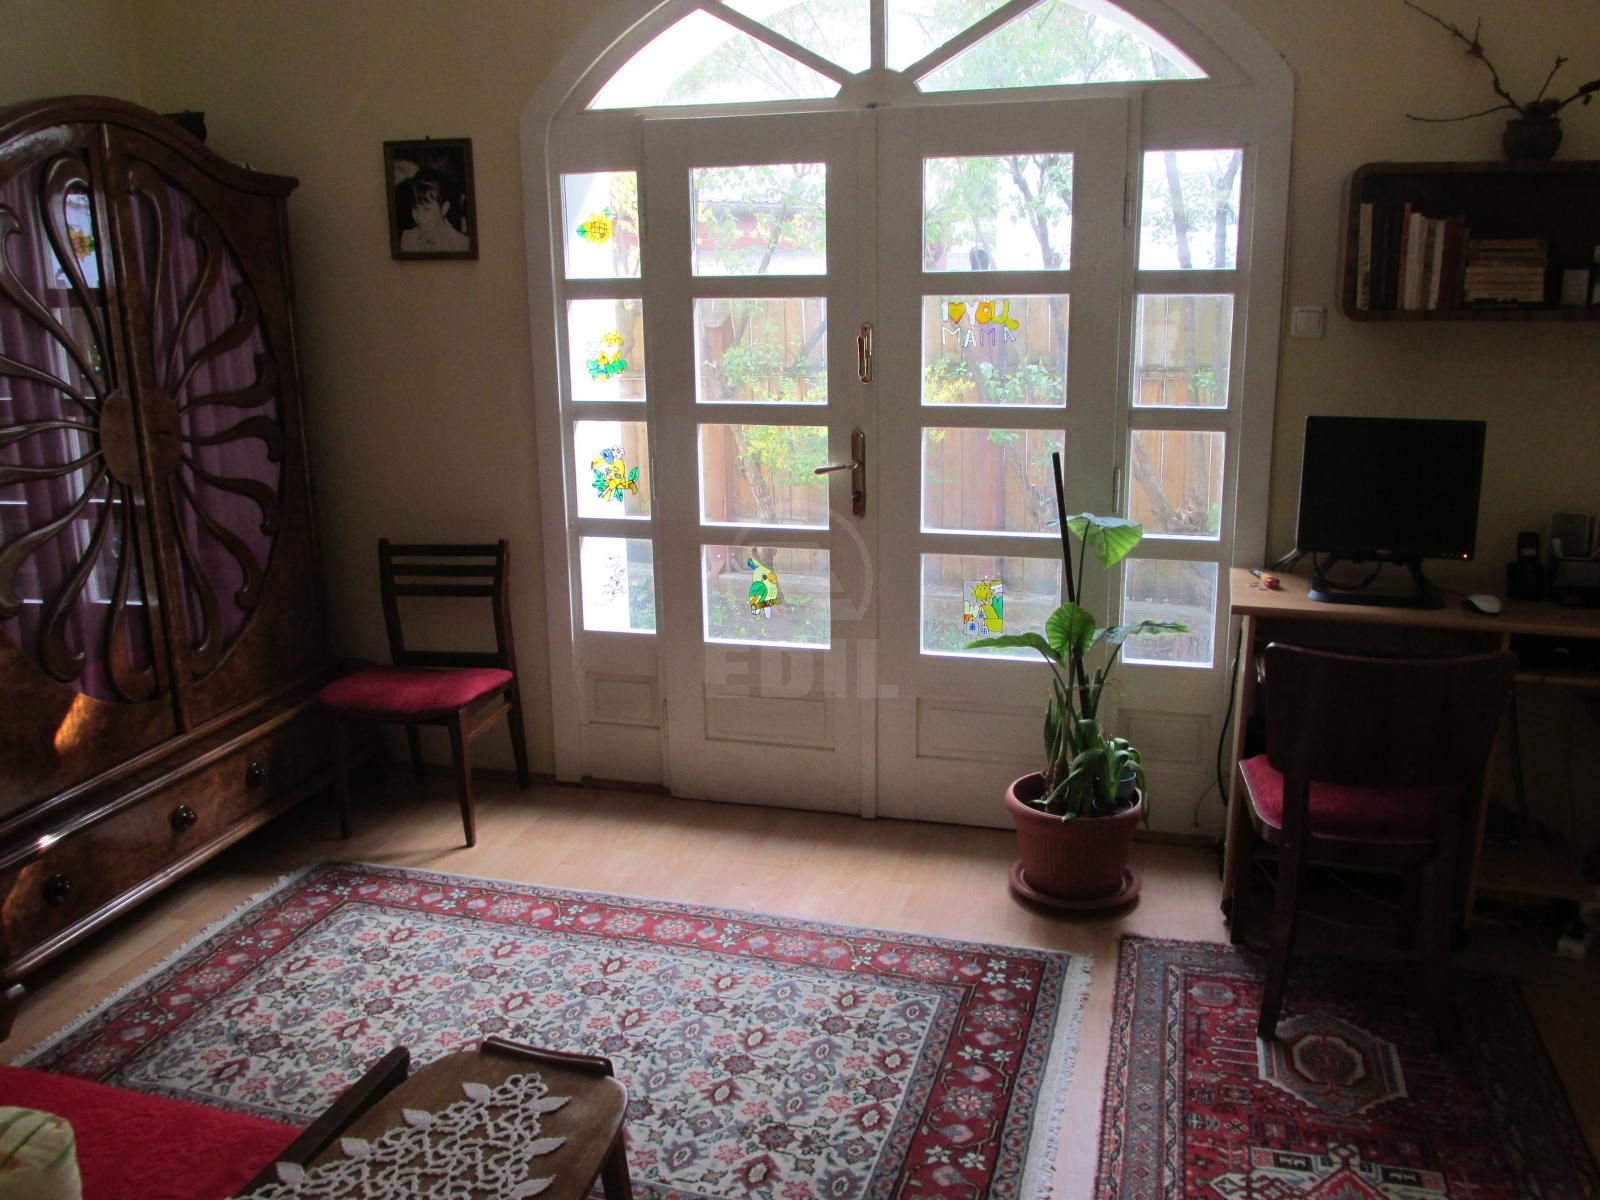 House for sale 6 rooms, CACJ274470-1